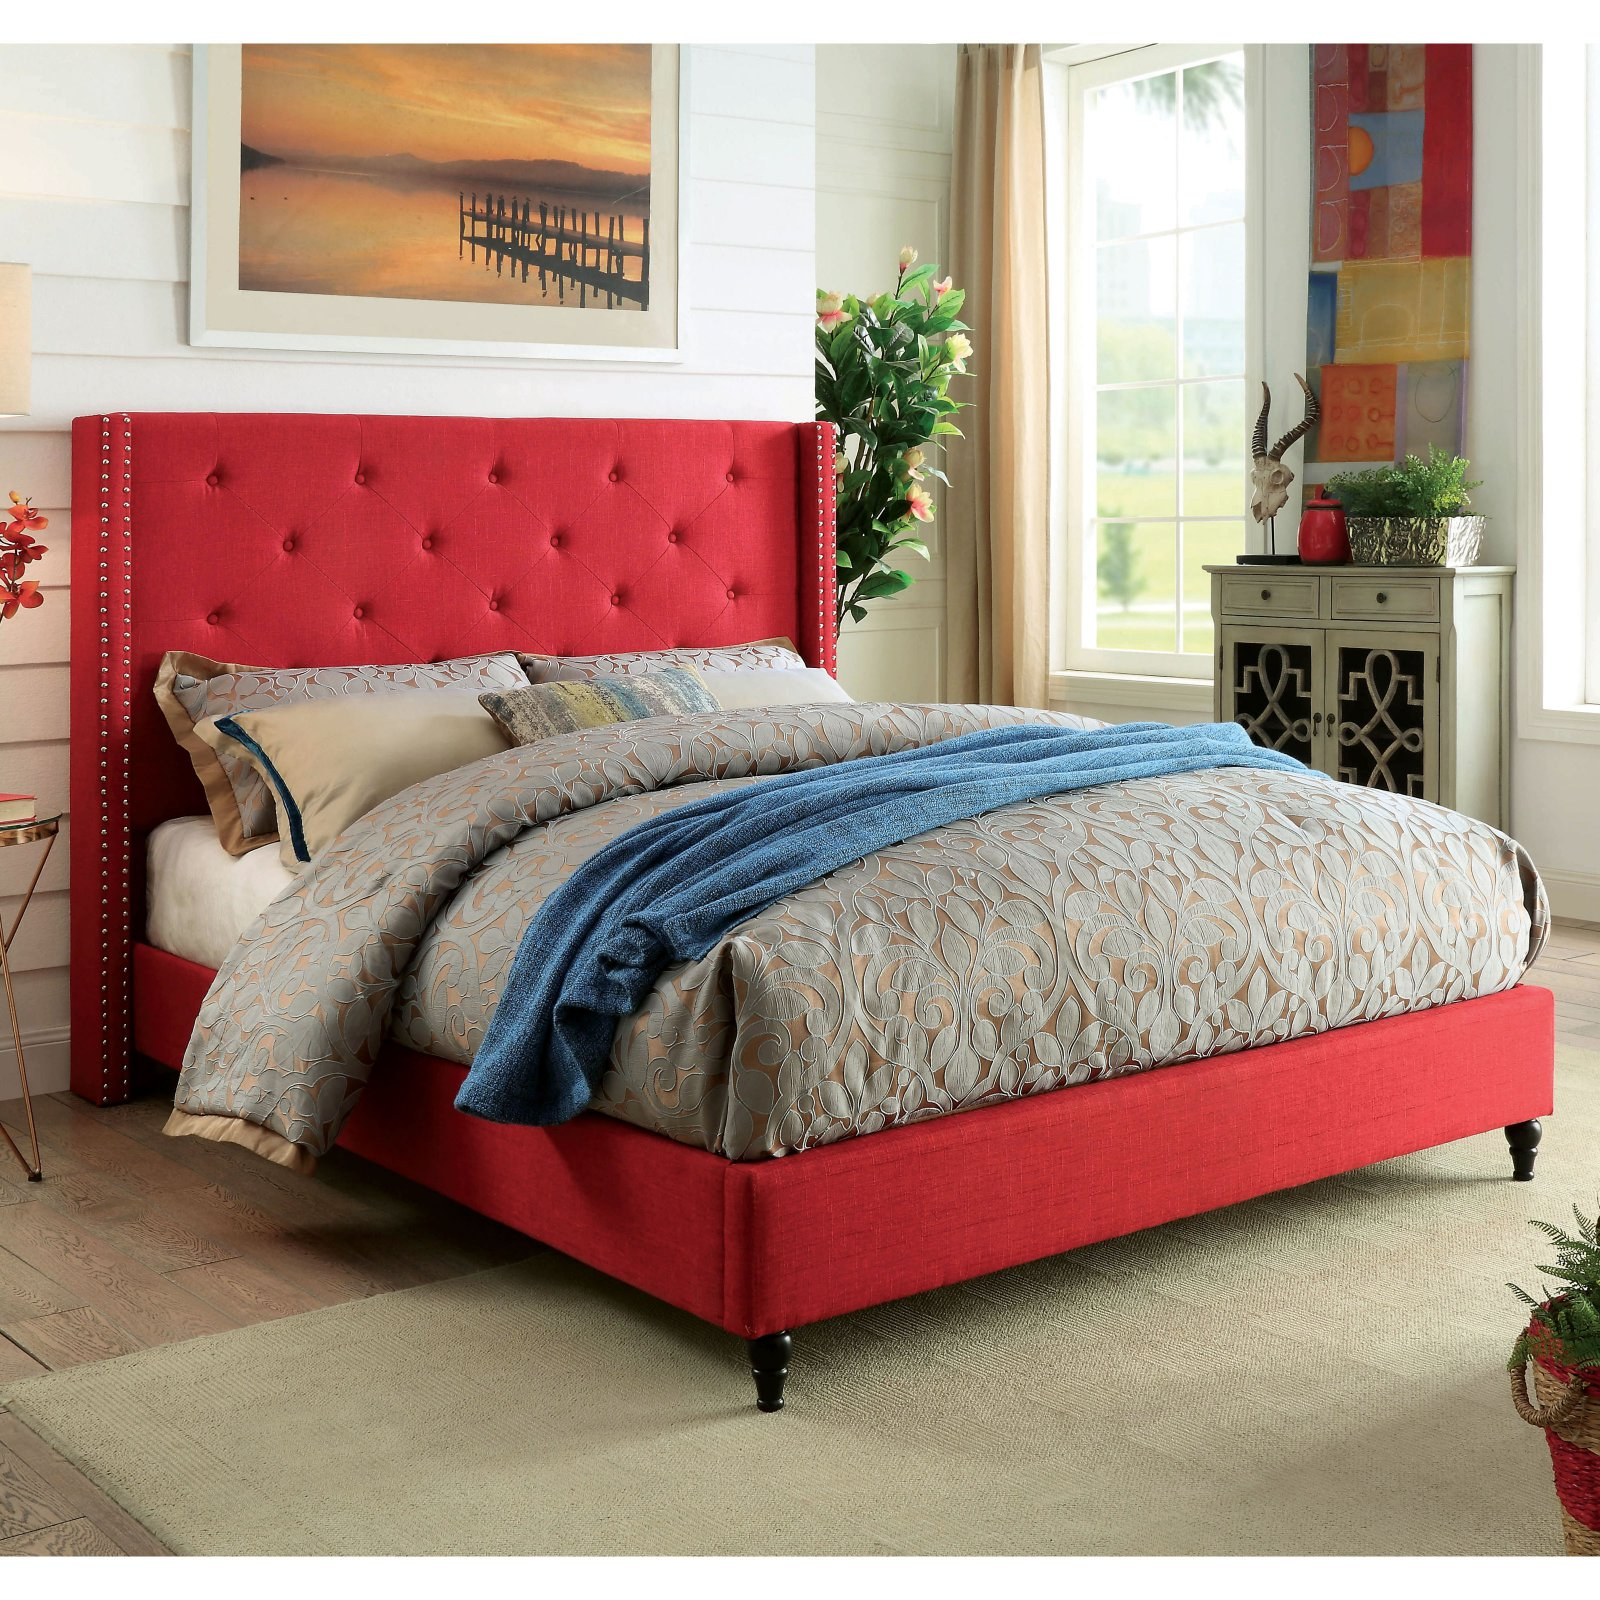 Furniture of America Selina Contemporary Tufted Linen-Like Fabric Wingback Platform Bed